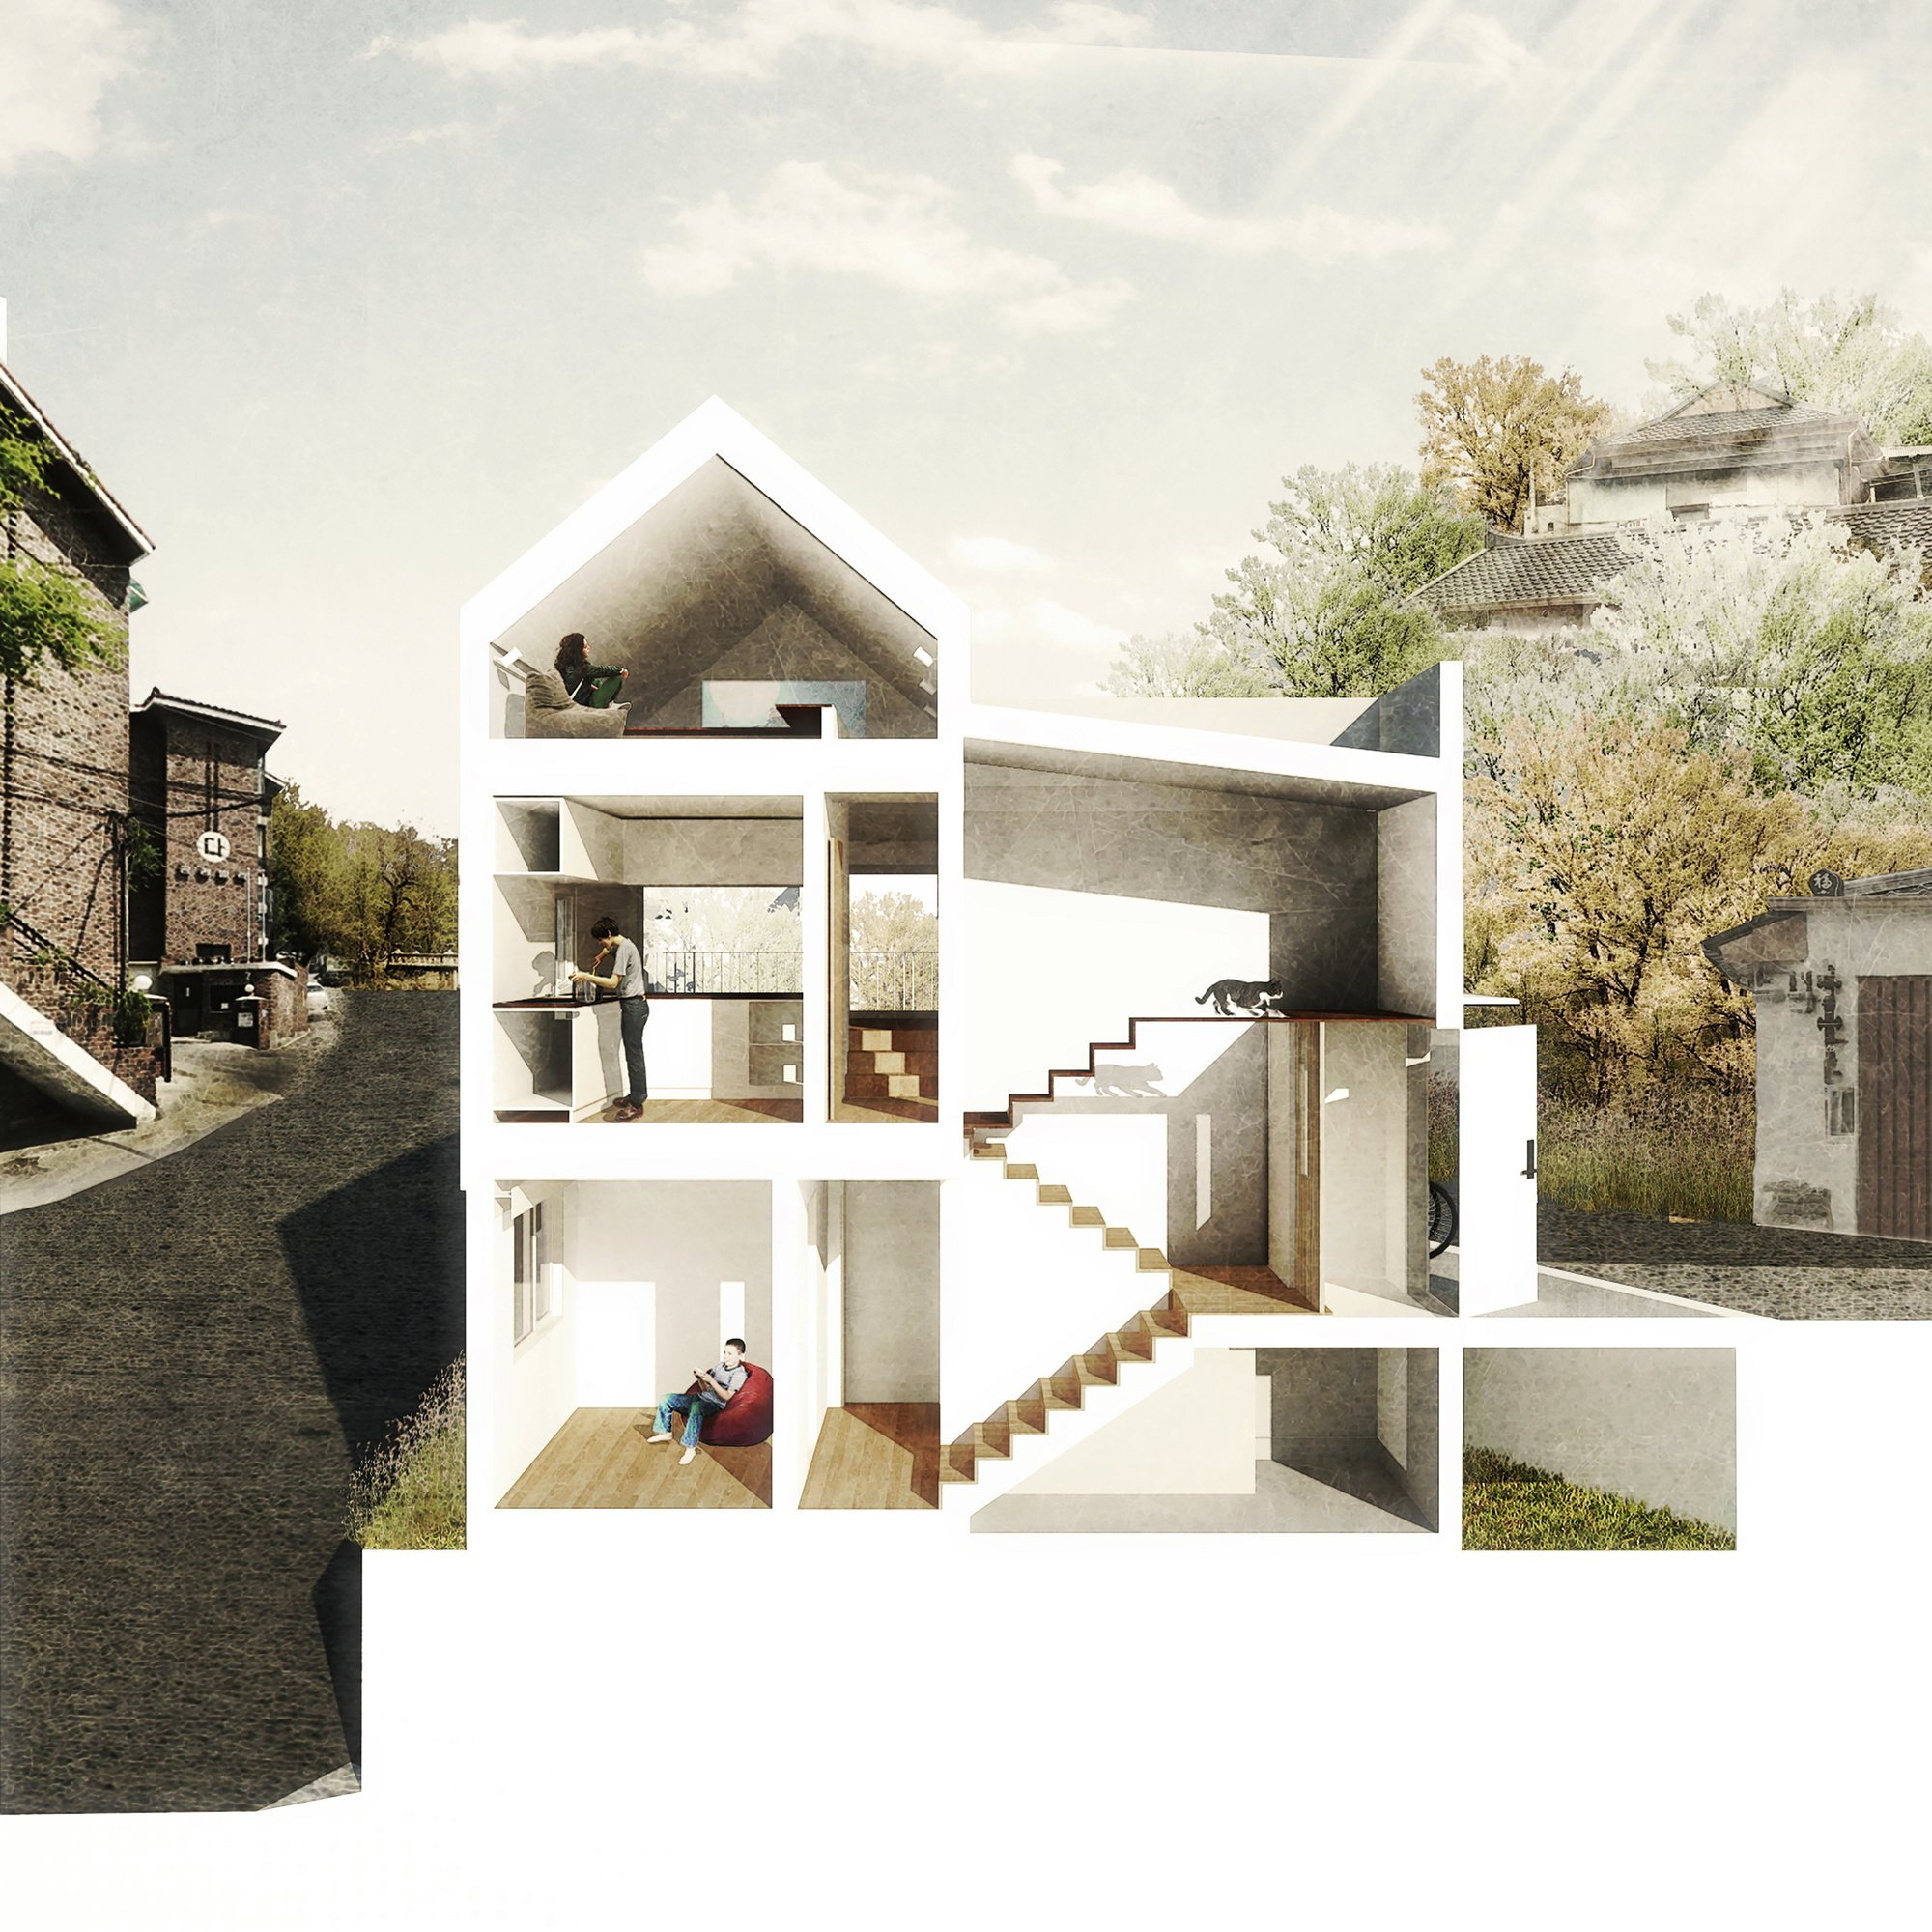 50m2 House - OBBA - Seoul - Cross-Section - Humble Homes